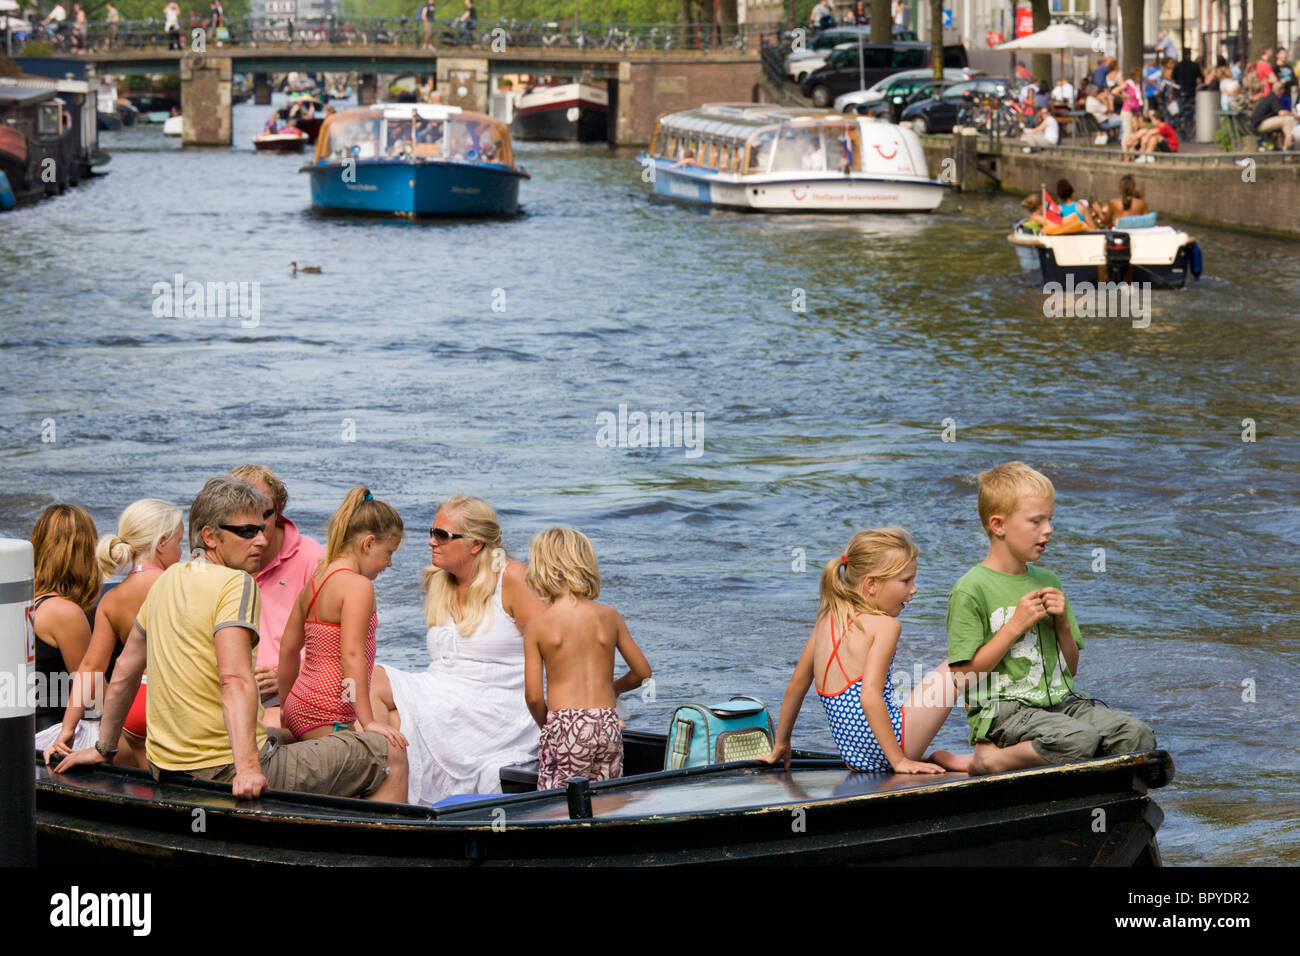 Amsterdam boating. Family with children in small open boat on the Prinsengracht Canal, with canal tour boats in - Stock Image